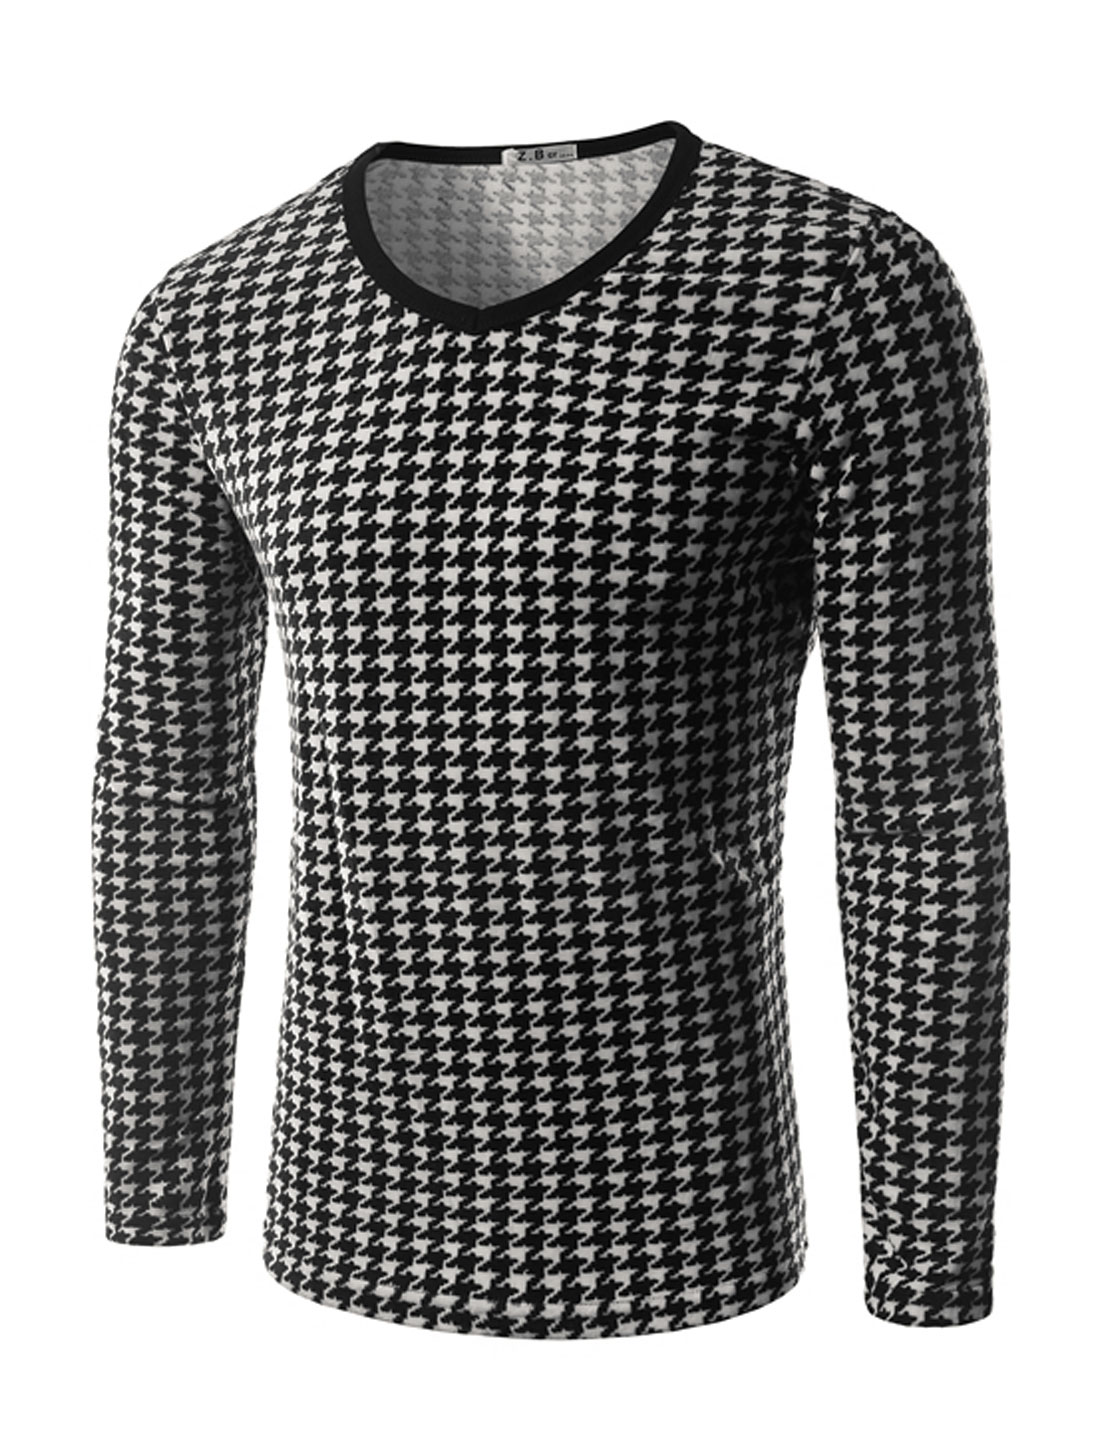 Man V Neck Houndstooth Slim Fit Plush T-Shirt Black M